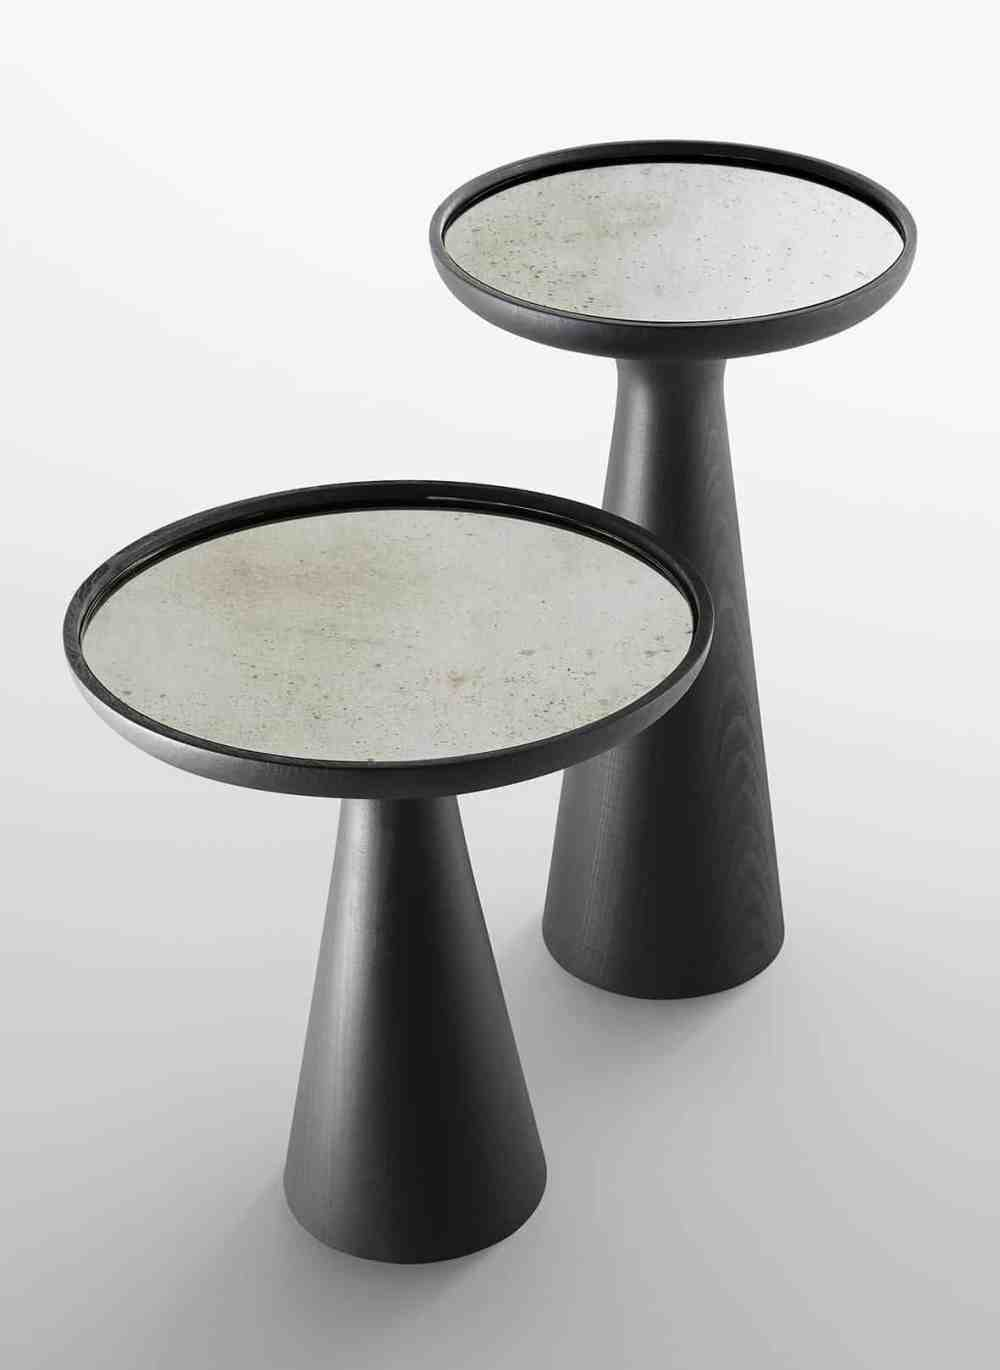 Fante GallottiRadice glass furniture milan 2015